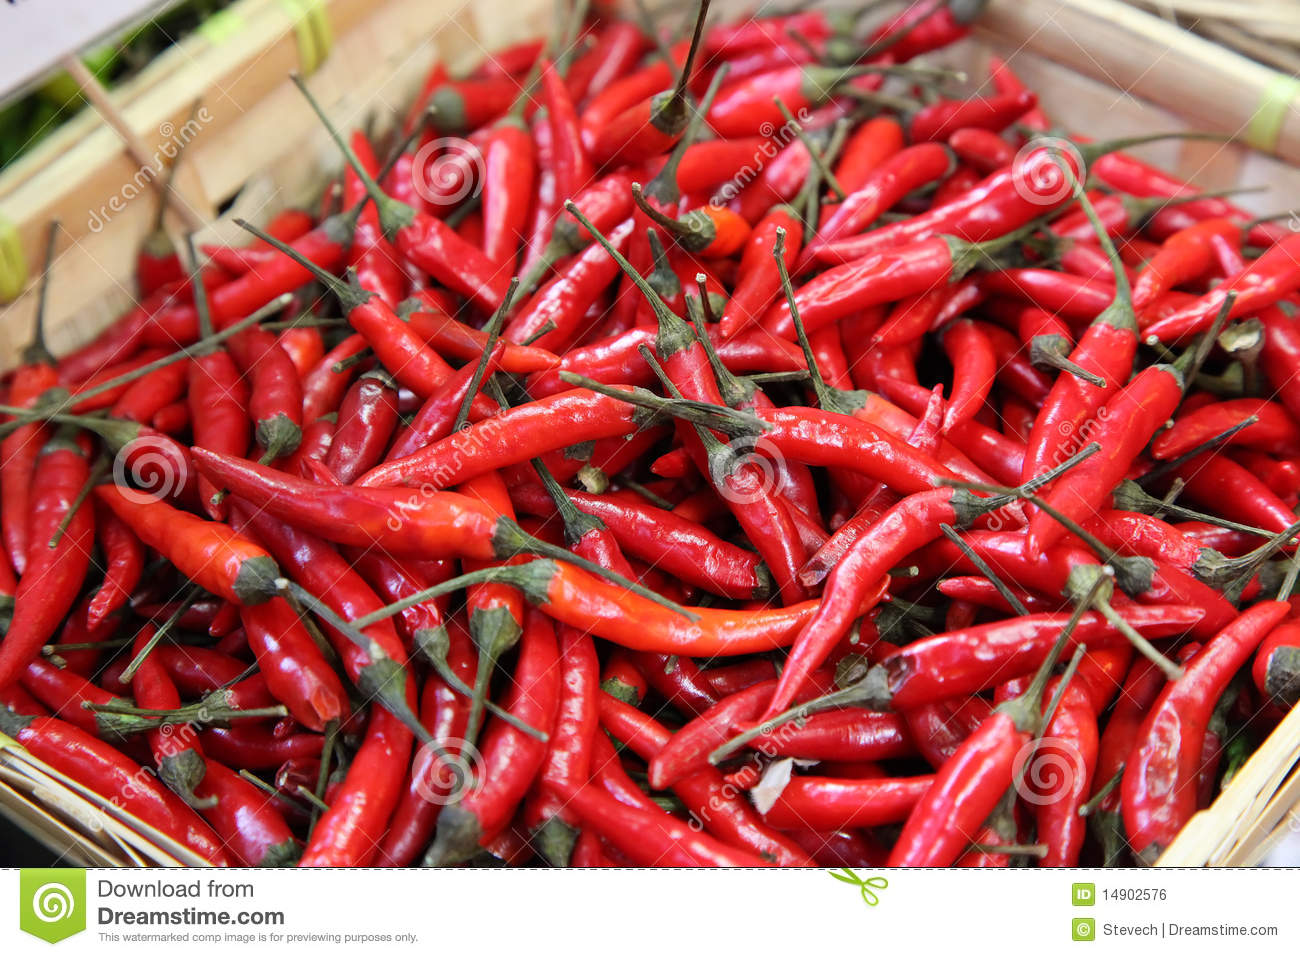 Red chili peppers at a food market